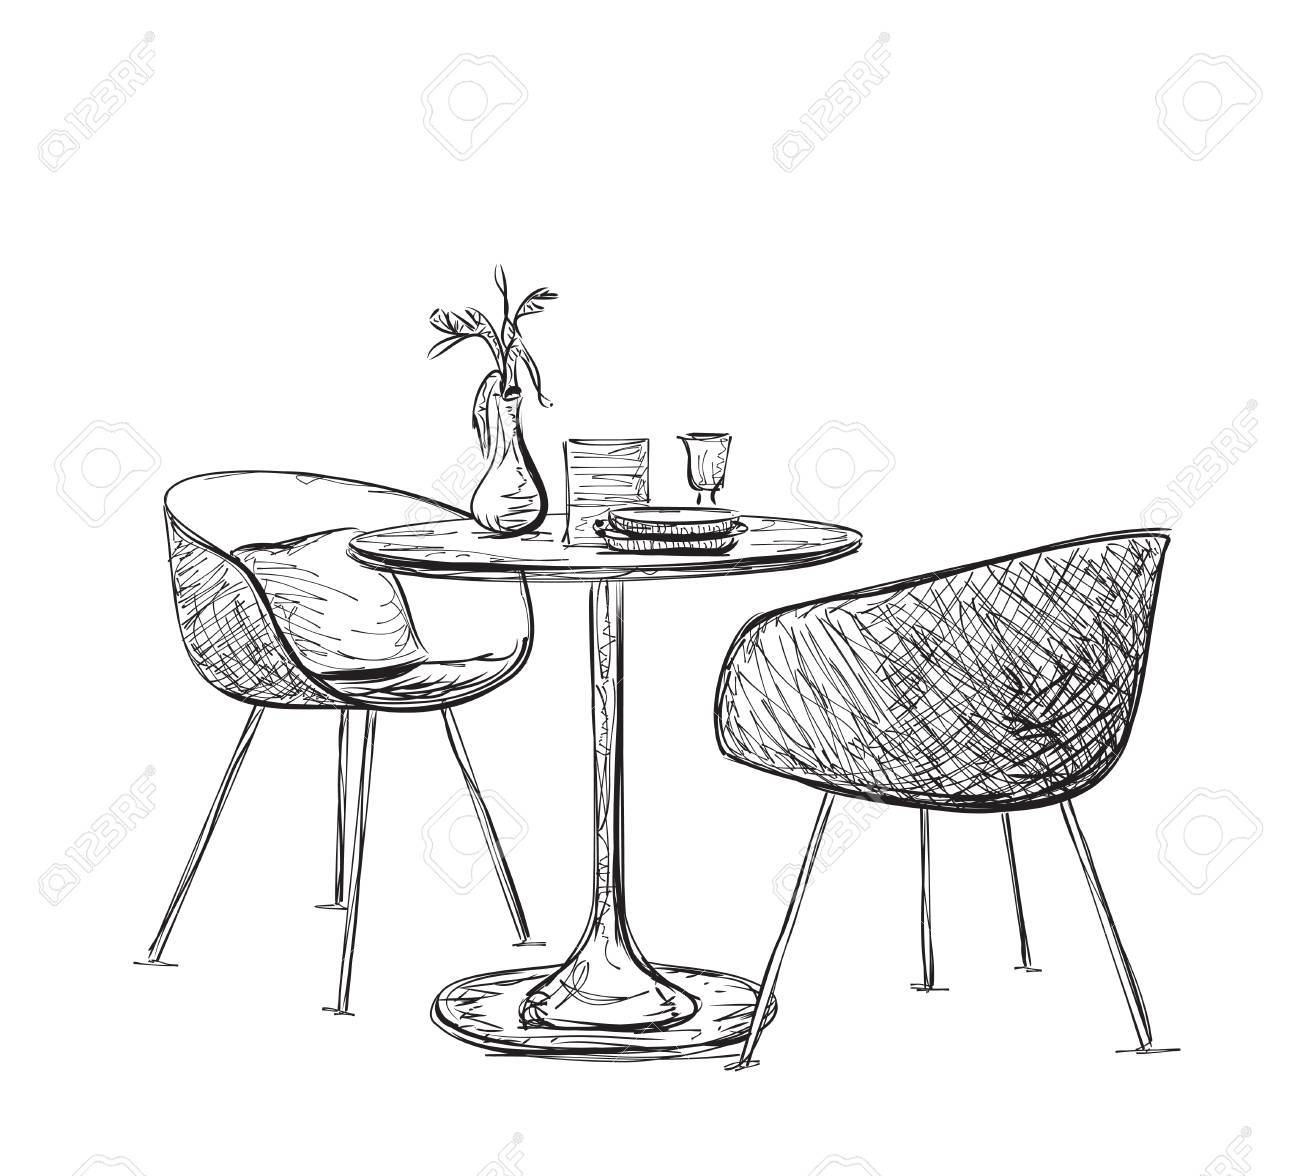 Delicieux Sketch Of Modern Interior Table And Chairs. Hand Drawn Furniture Stock  Vector   57445344